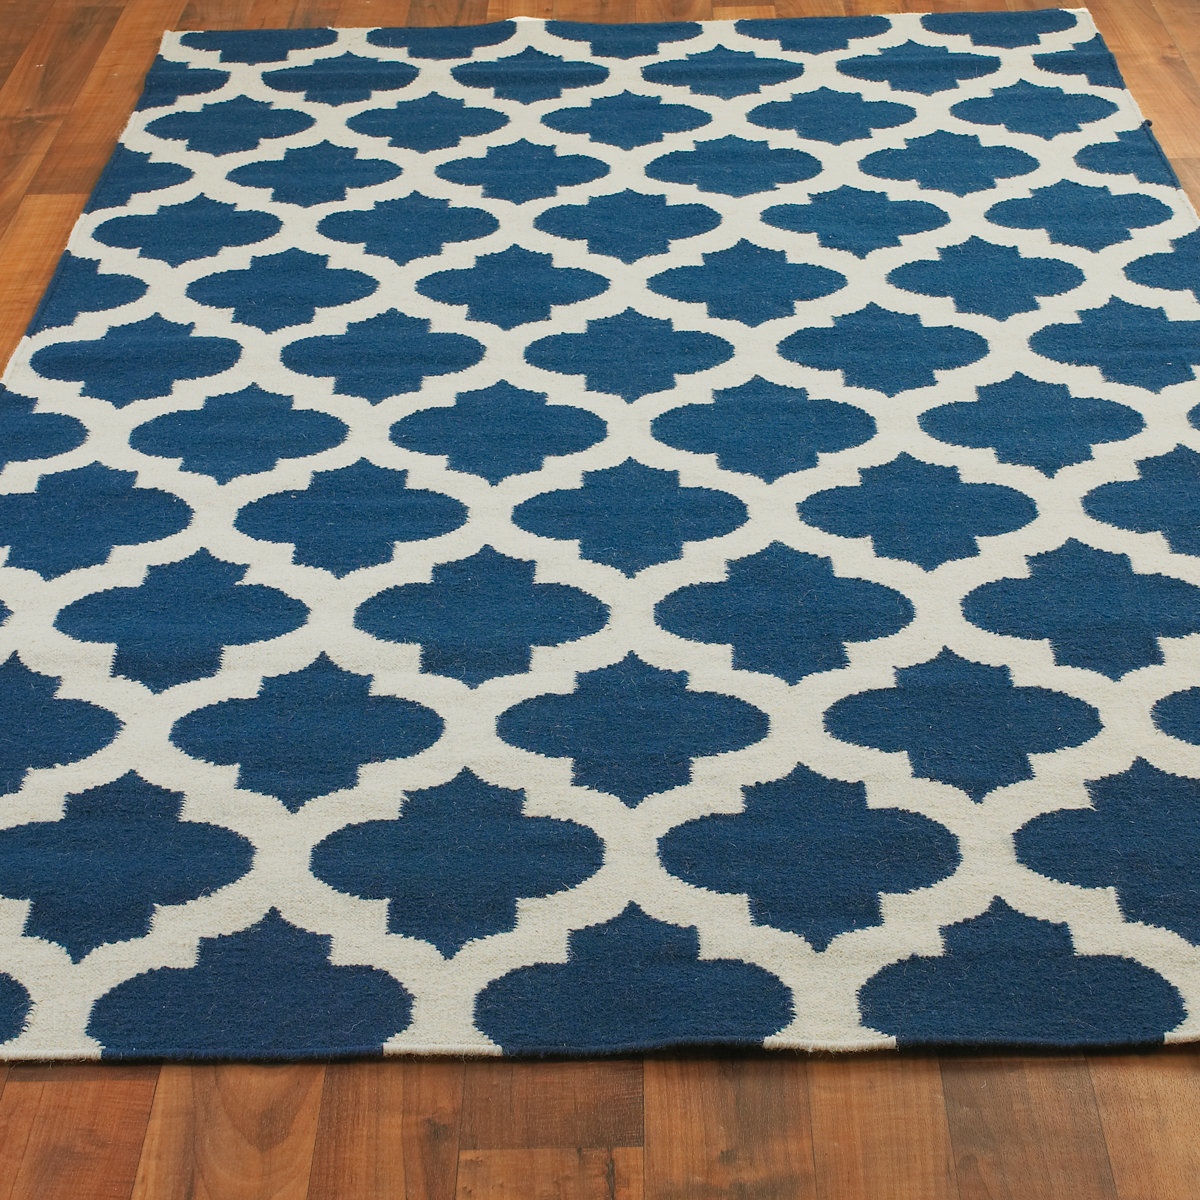 dhurrie rugs ironwork trellis dhurrie rug cobalt_blue_ivory CLHQPAY